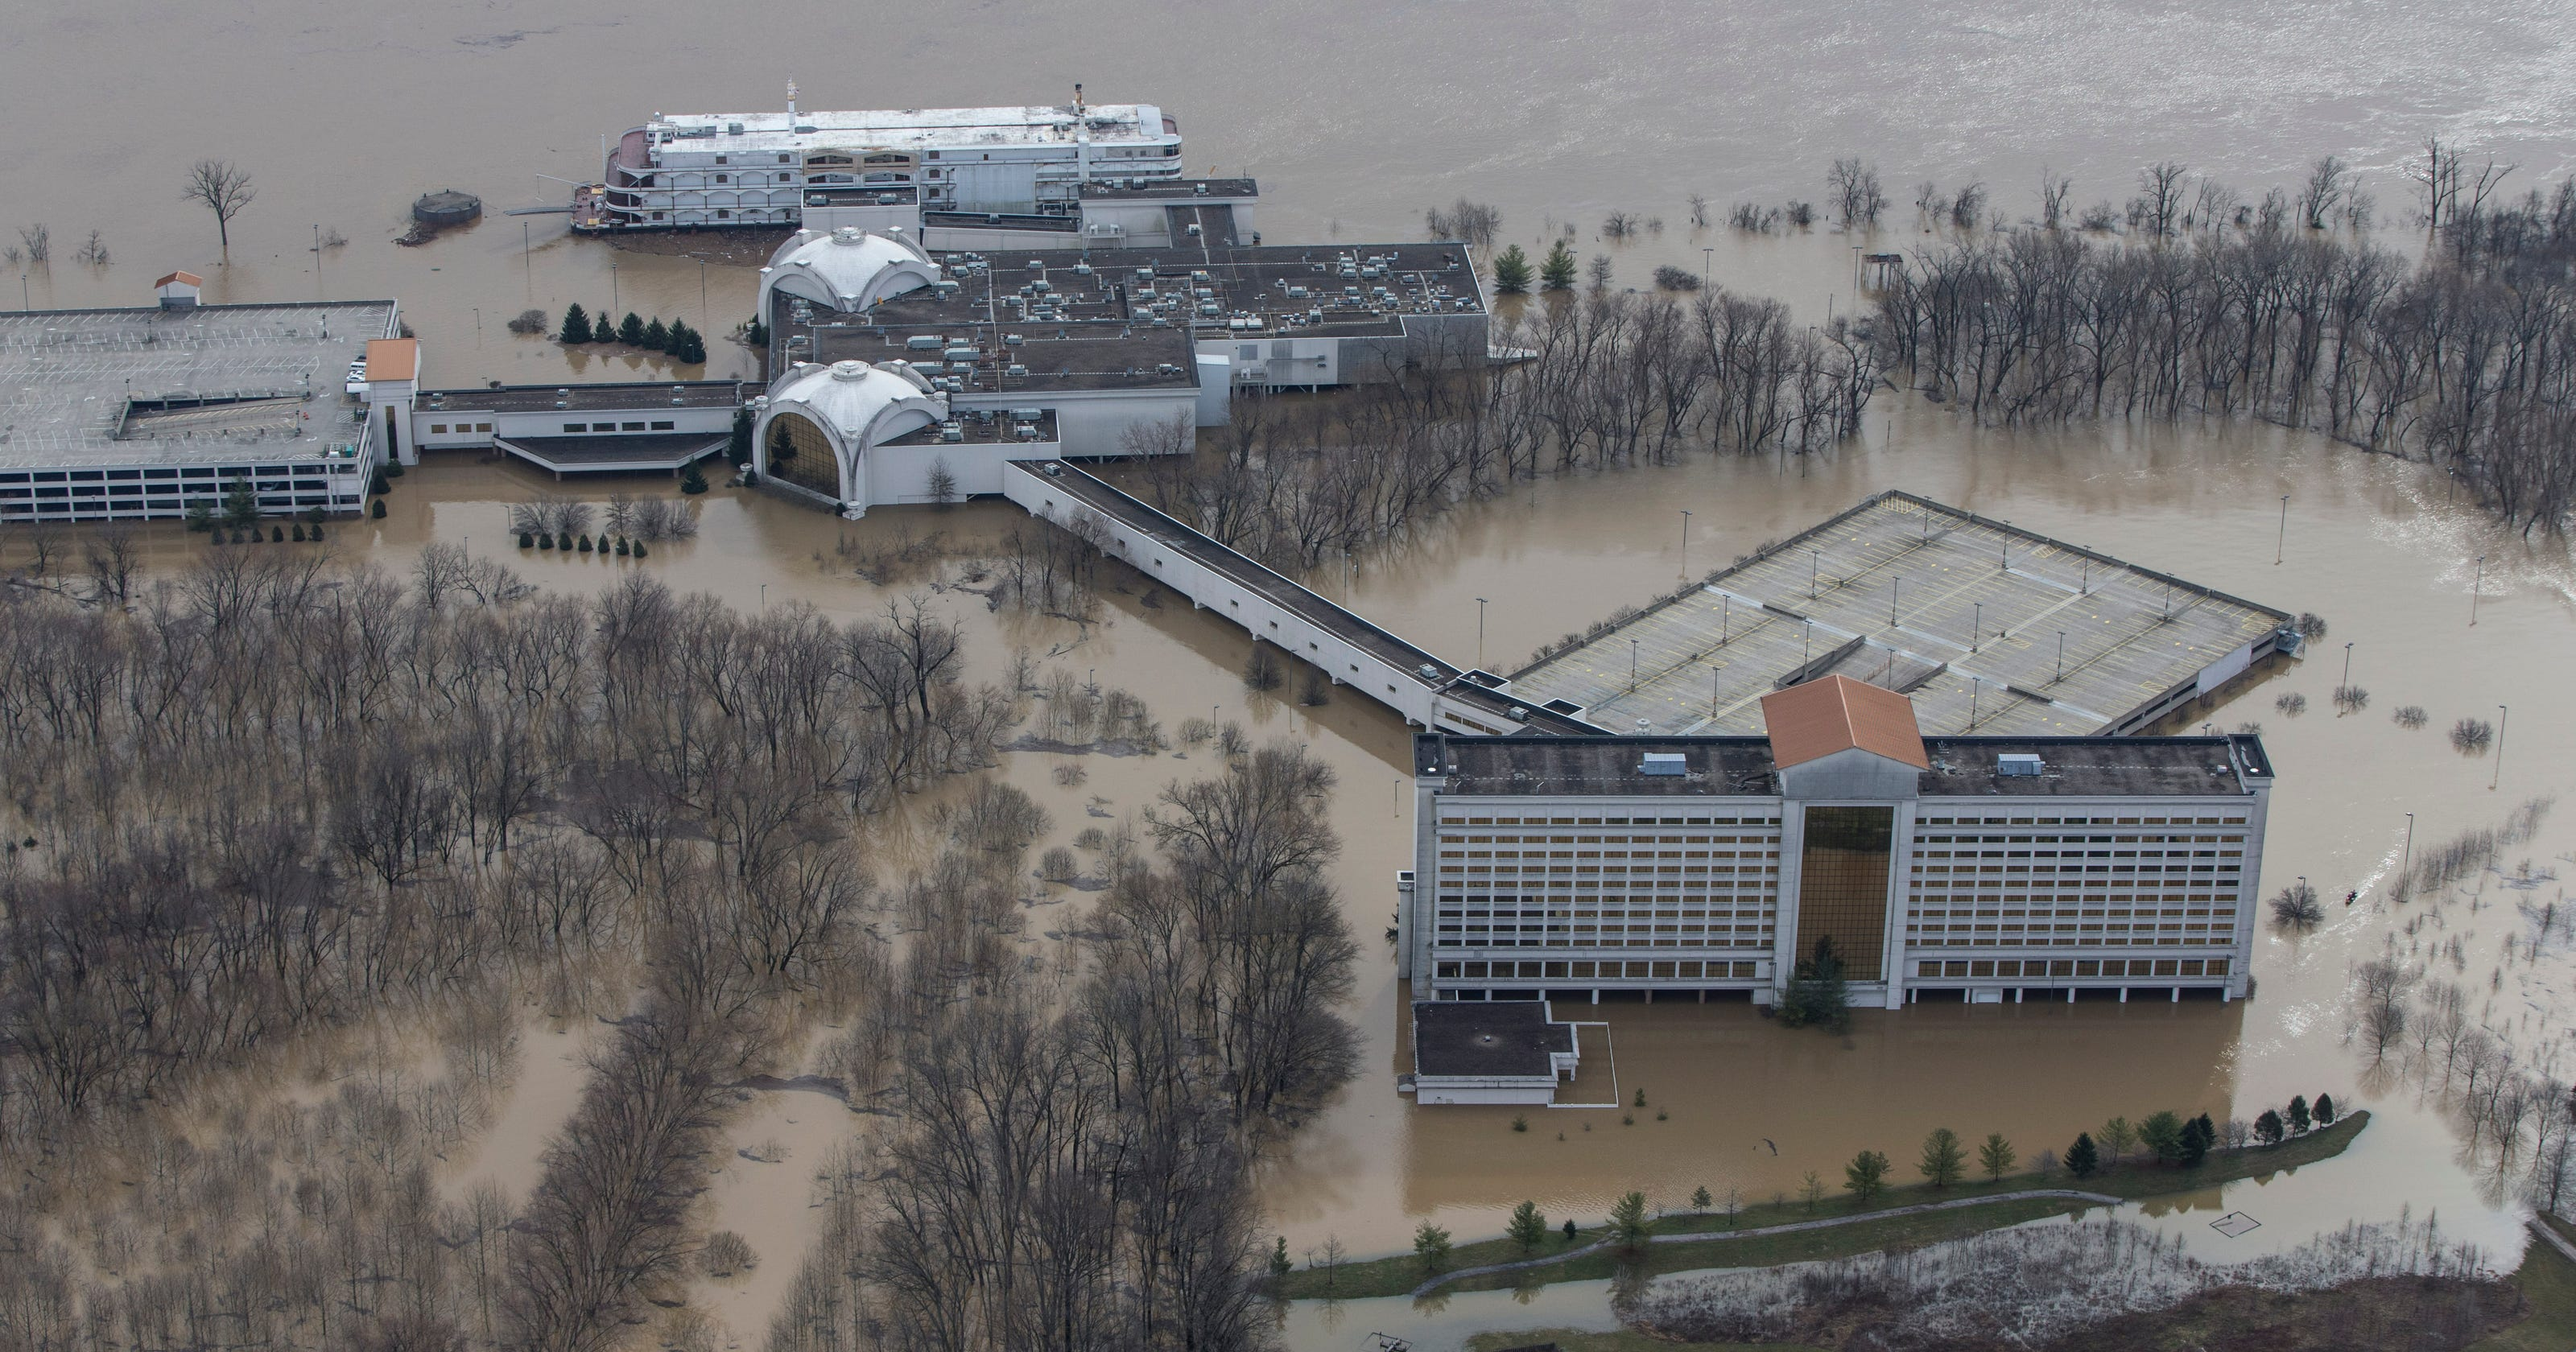 Flooding closes Horseshoe Southern Indiana casino, costing taxpayers